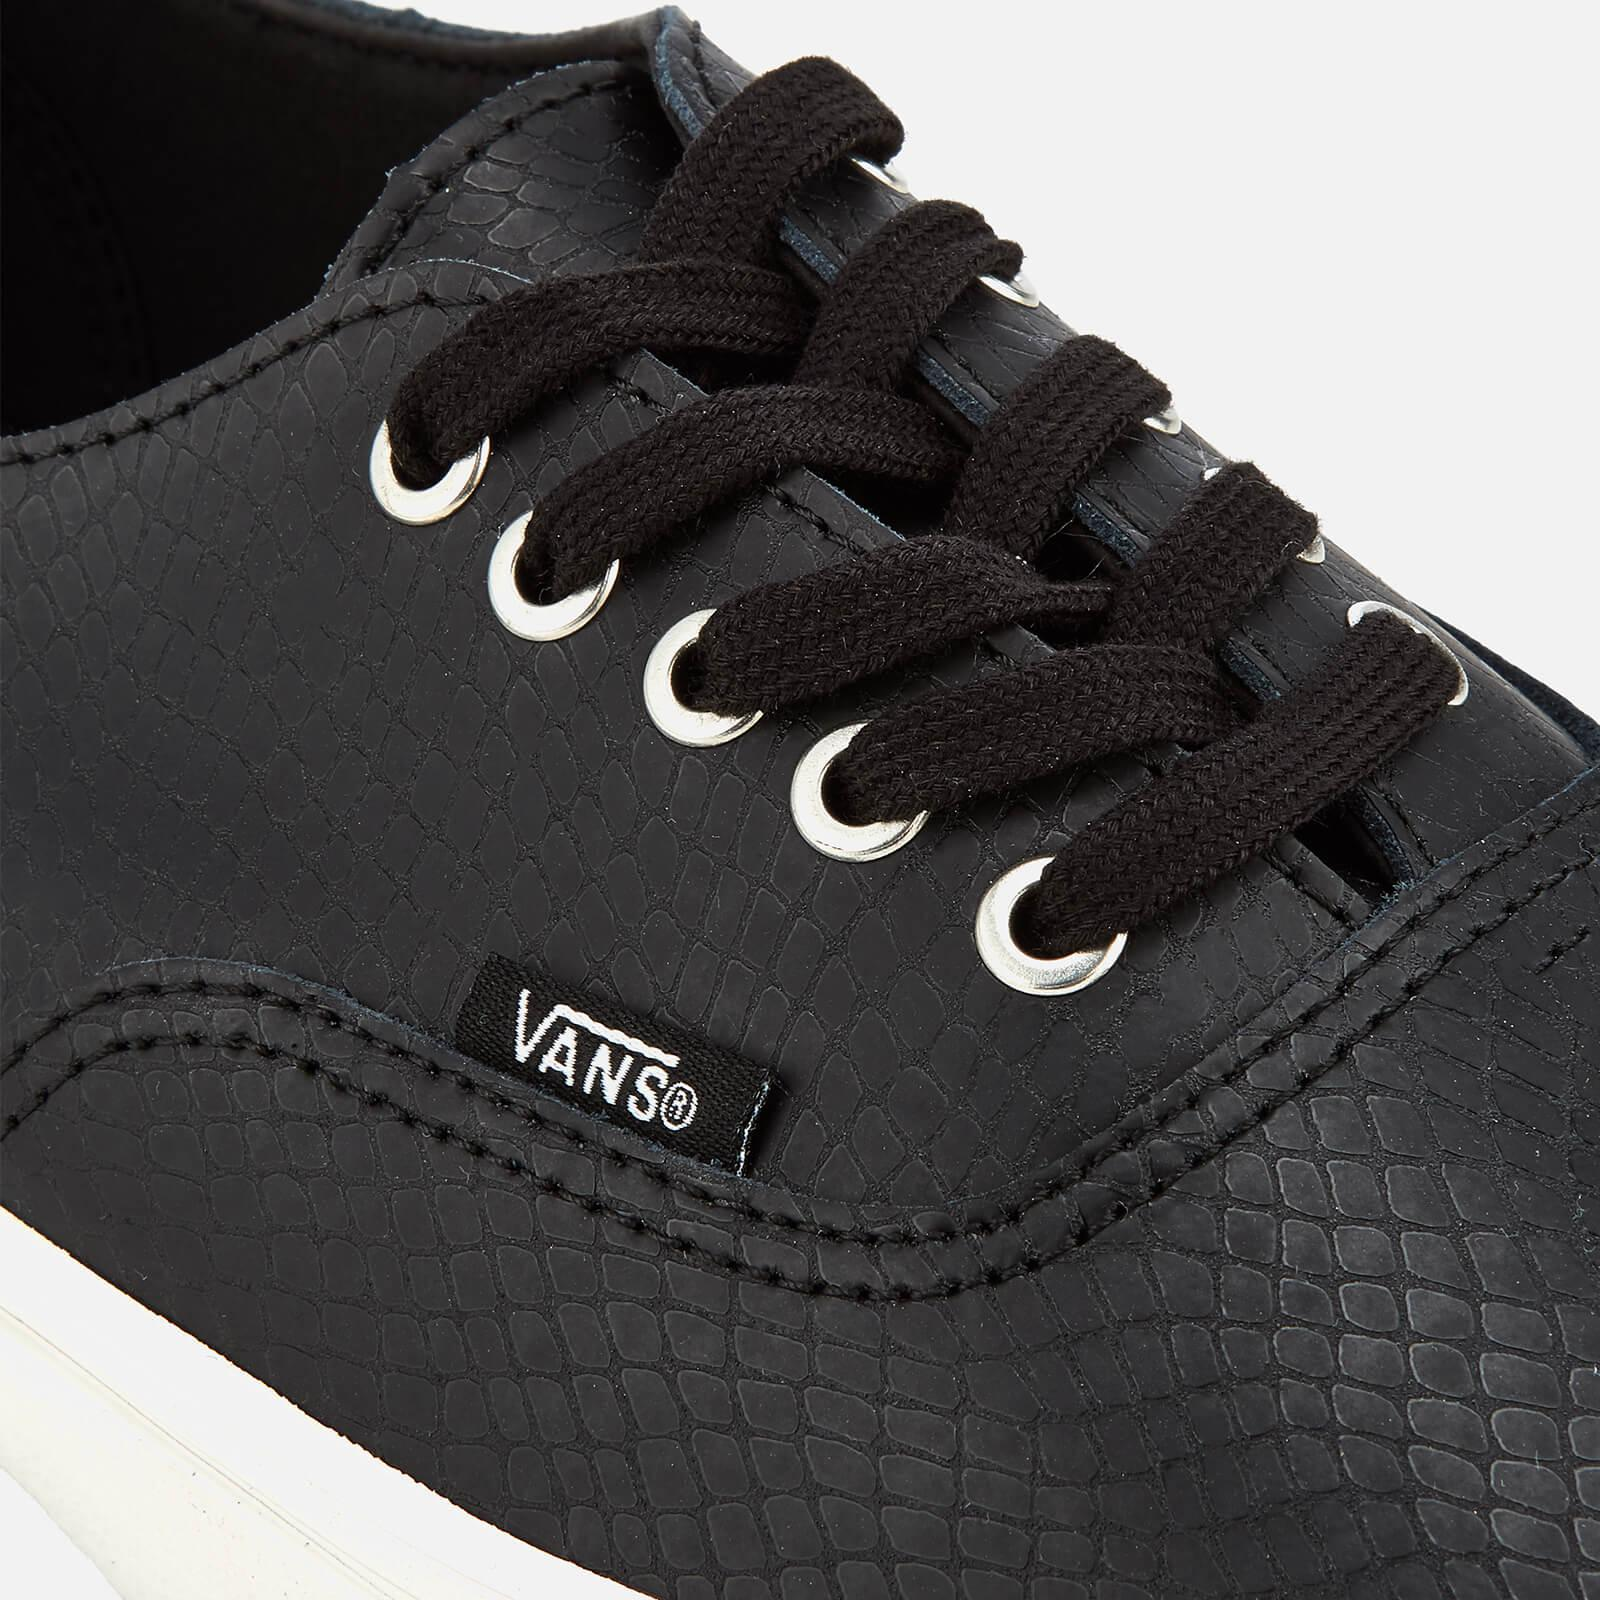 280dc3eee7a Vans Authentic Decon Snake Trainers in Black for Men - Lyst